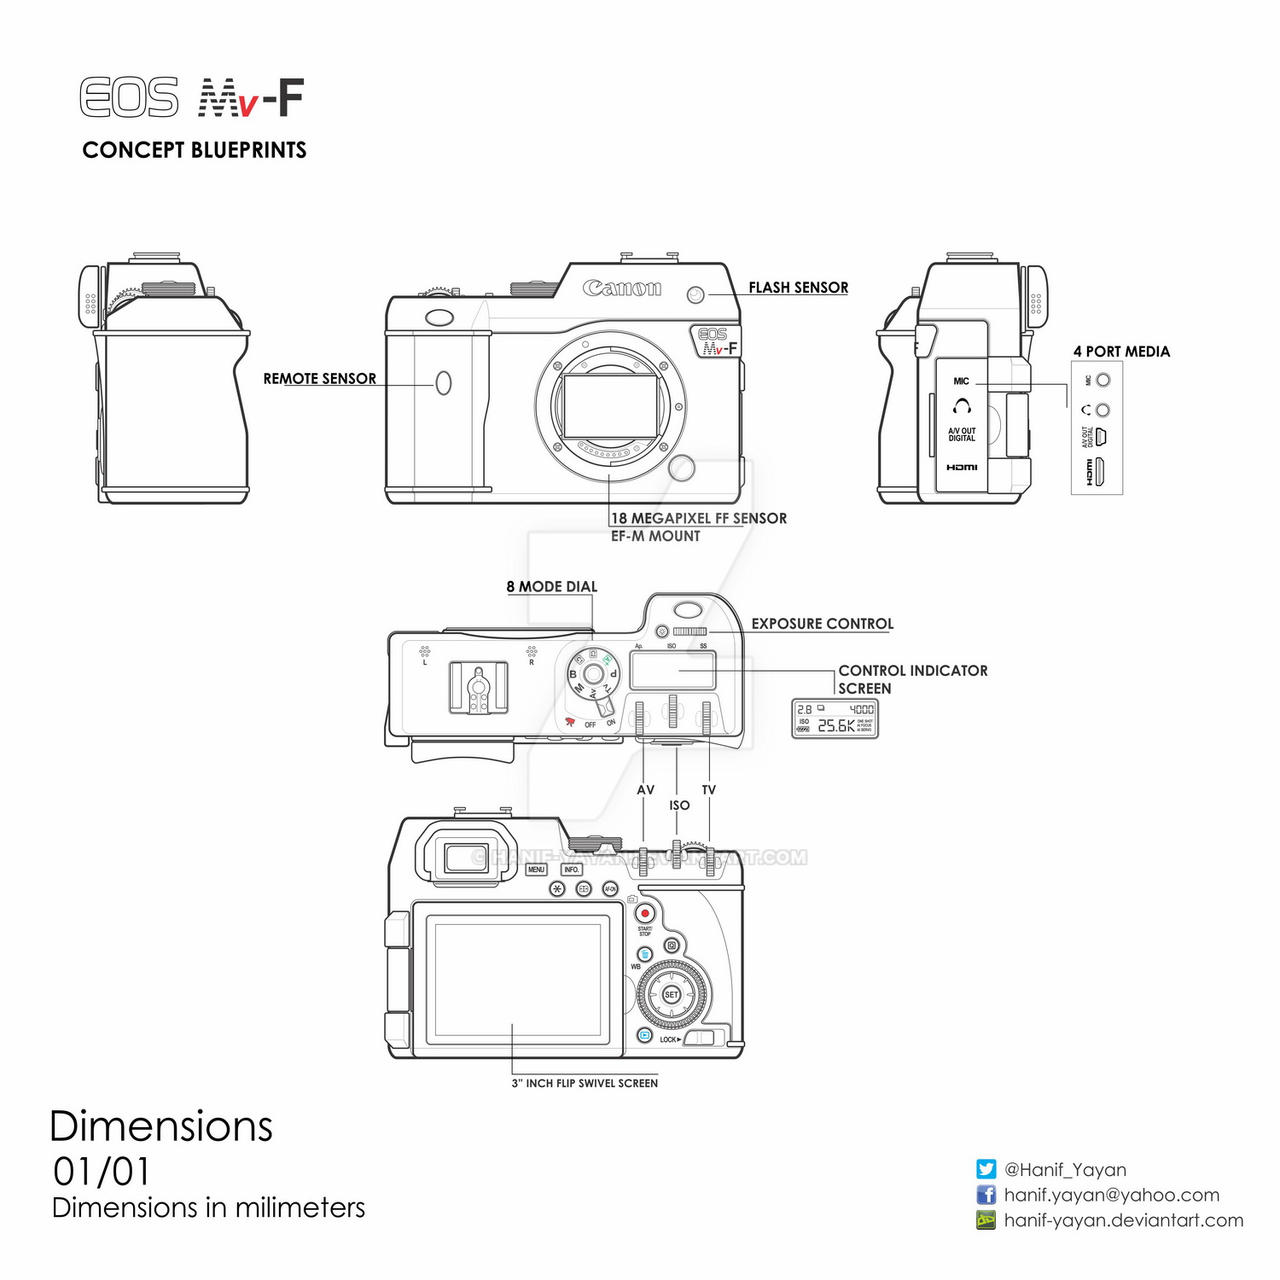 Canon eos mv f concept blueprints by hanif yayan on deviantart canon eos mv f concept blueprints by hanif yayan malvernweather Choice Image